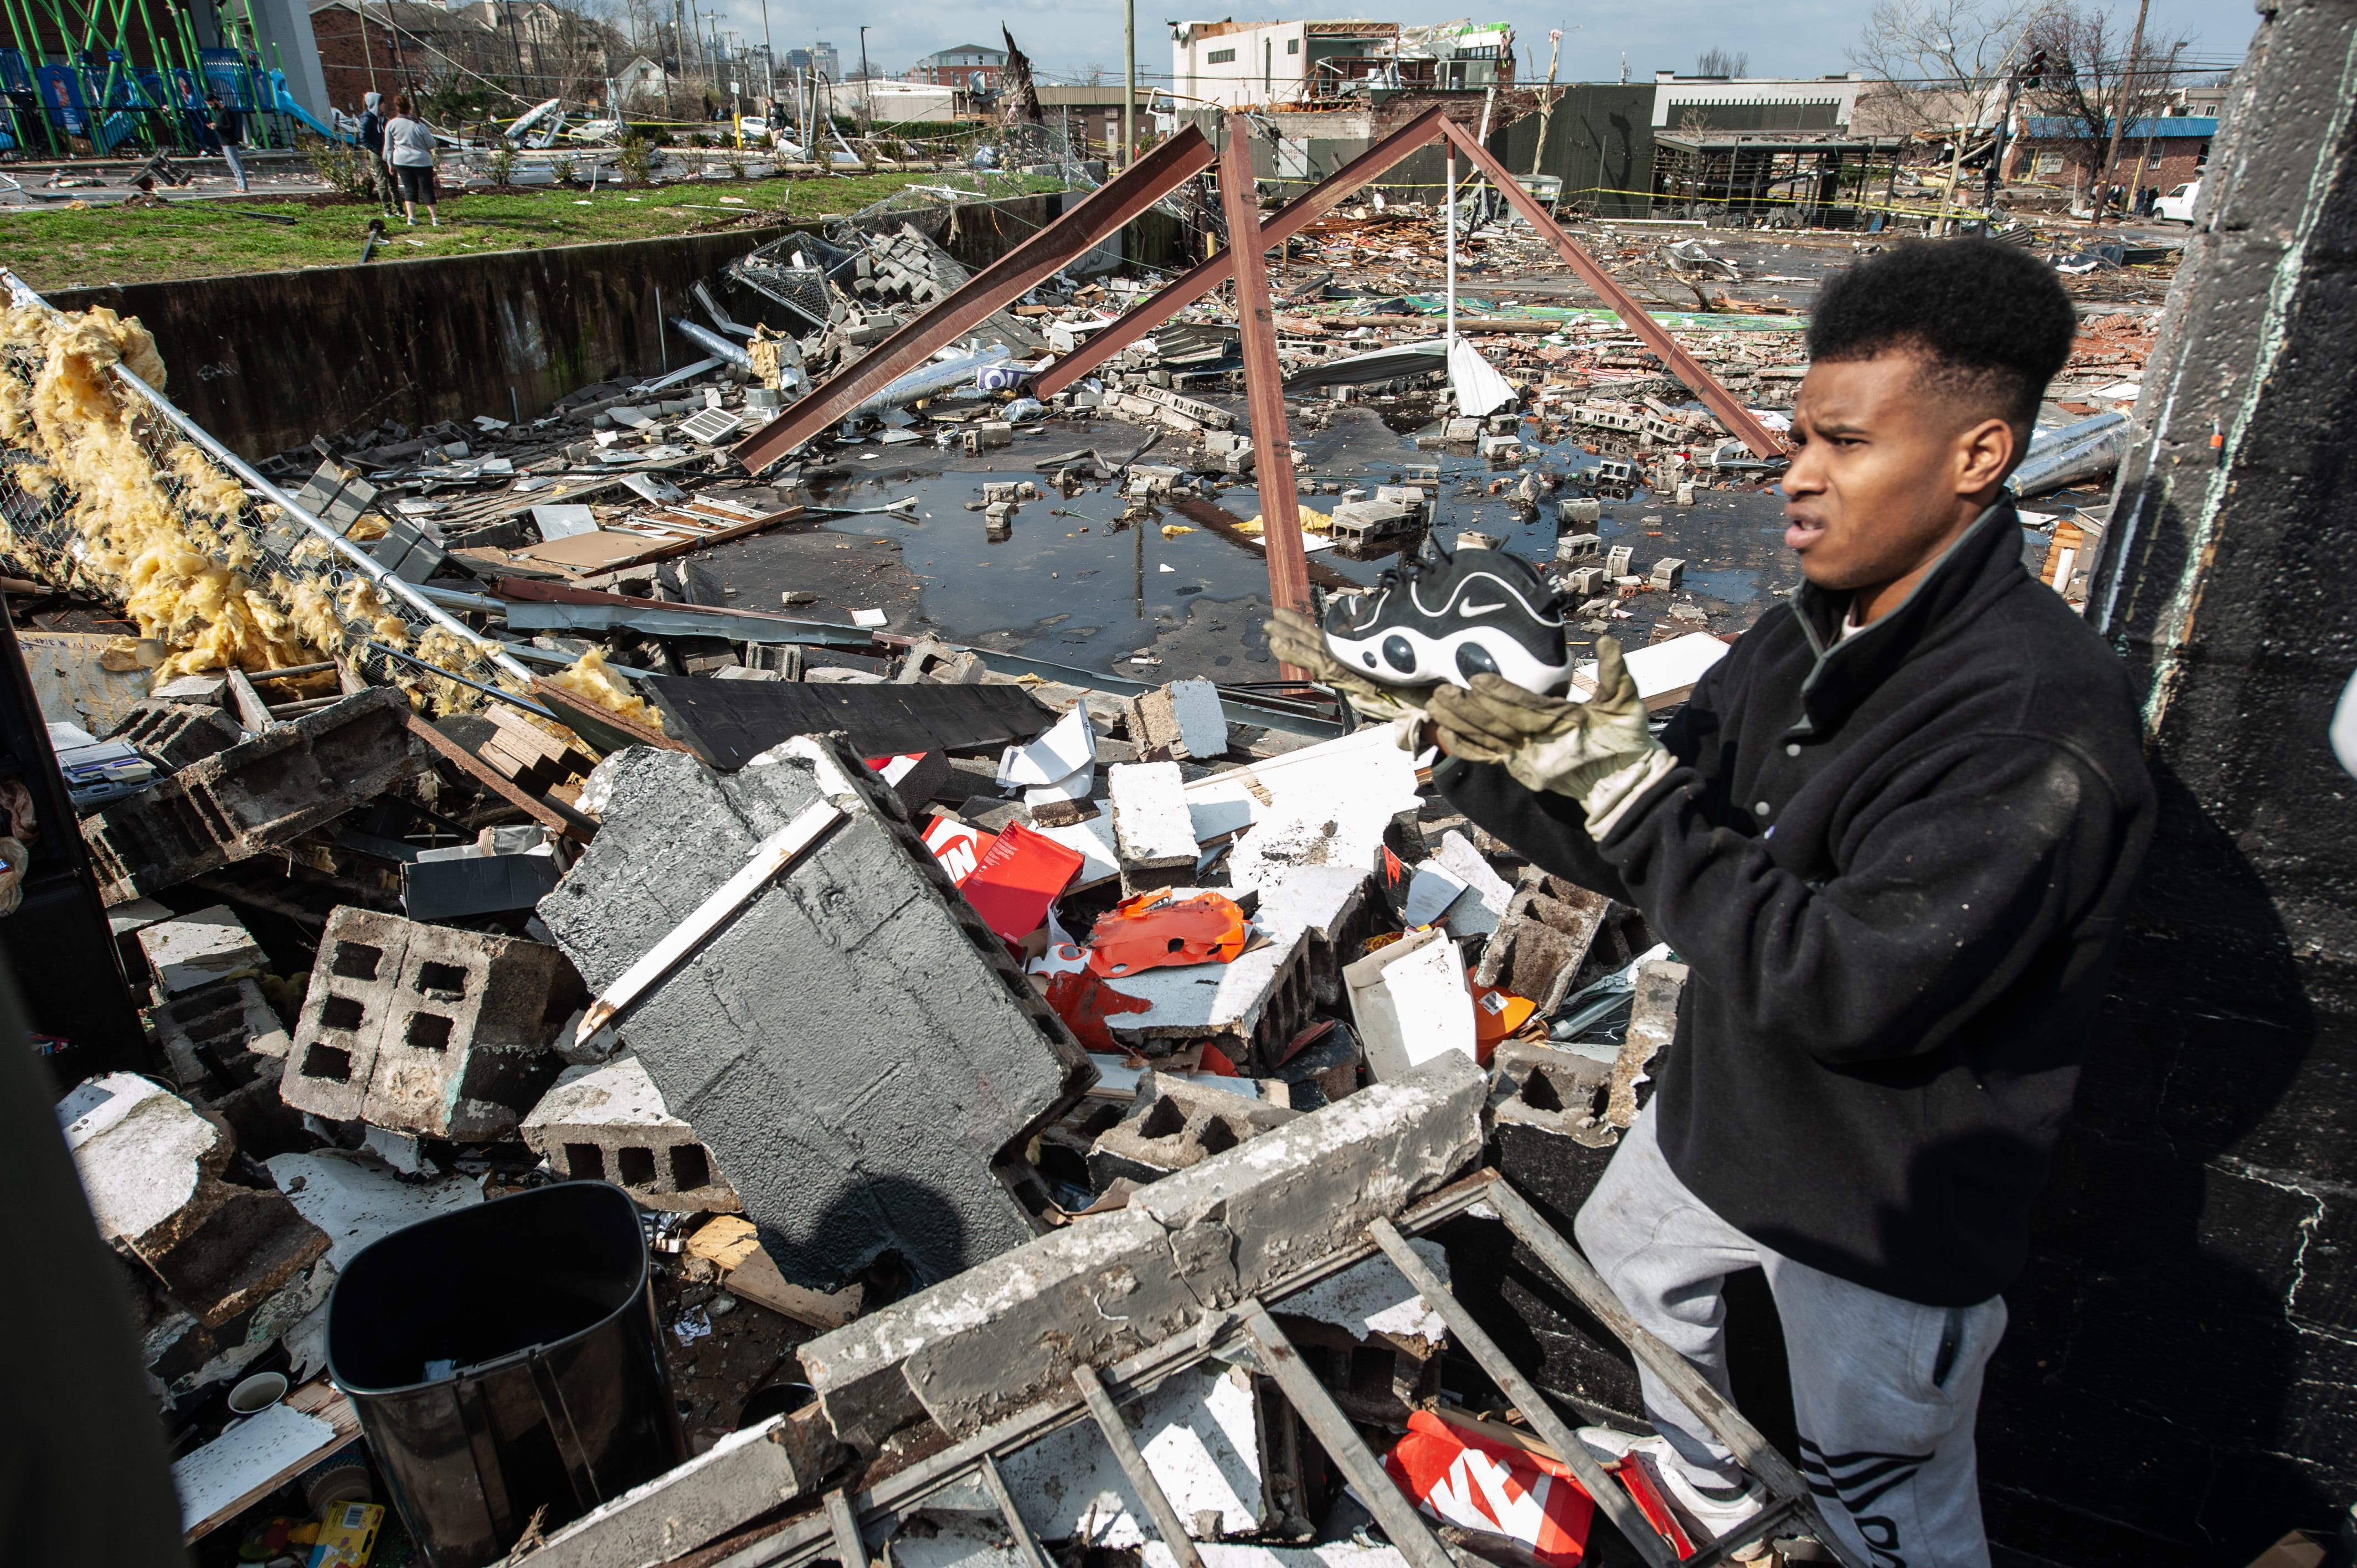 Dominique Fowler helps salvage items from Music City Vintage in East Nashville on Tuesday after a tornado ripped through the area, obliterating buildings and killing at least 25 people across the state.